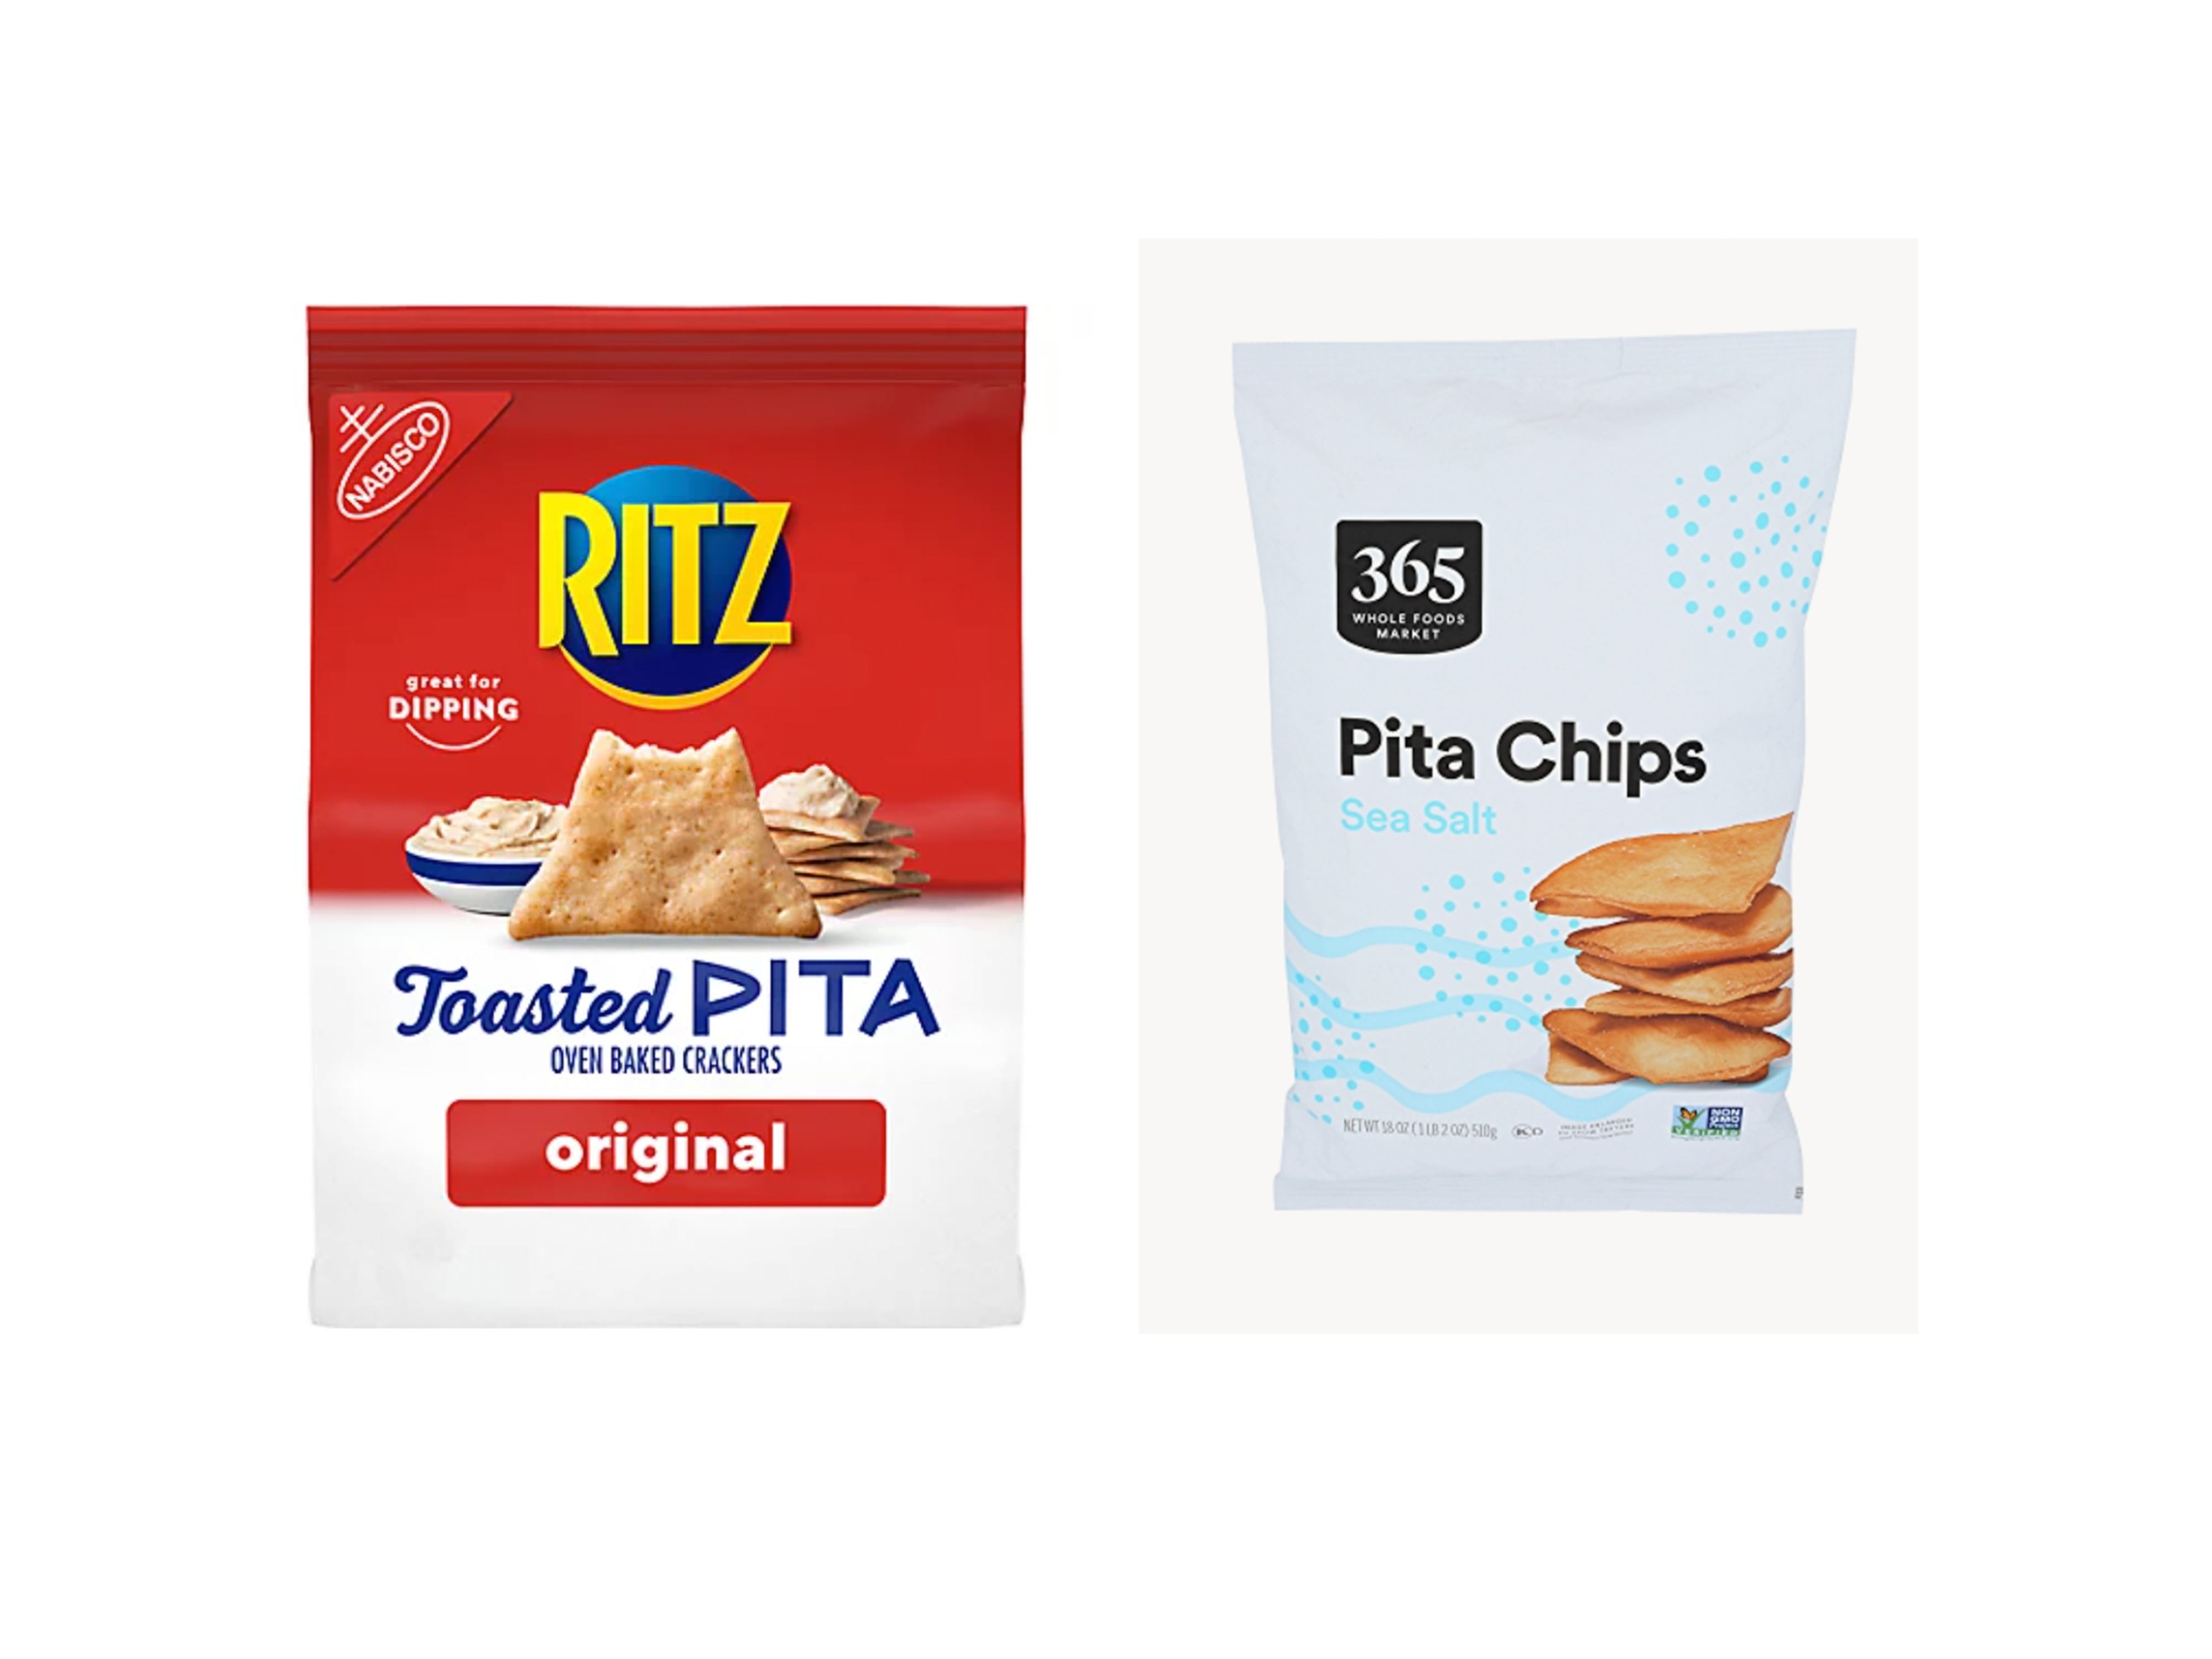 ritz toasted pita crackers and whole foods 365 pita chips